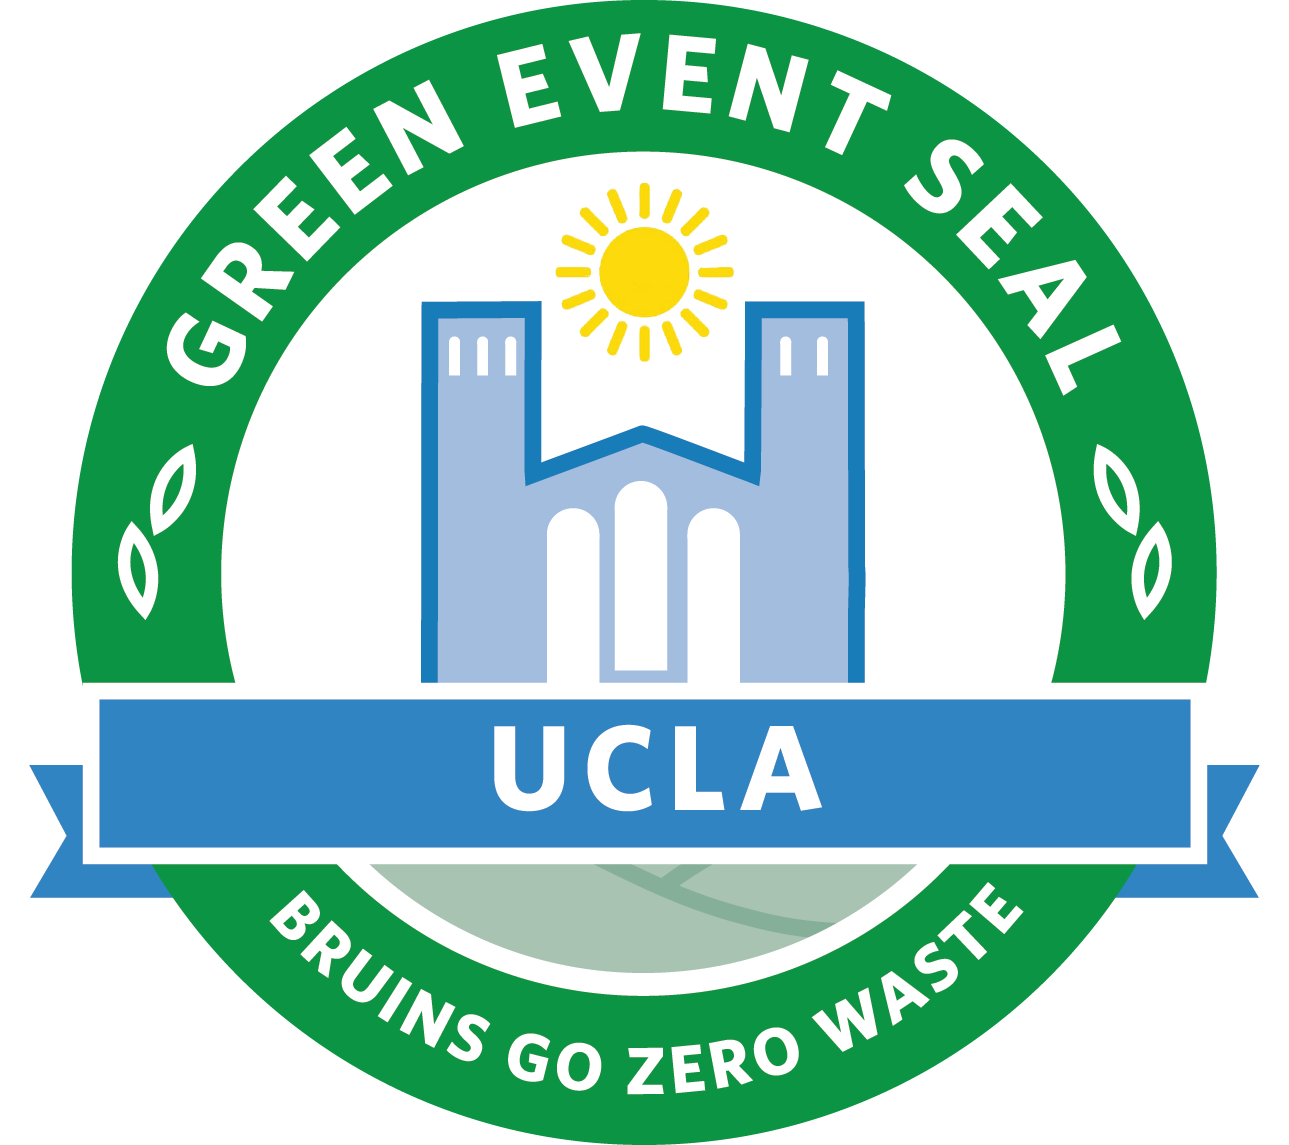 UCLA Green Event Seal